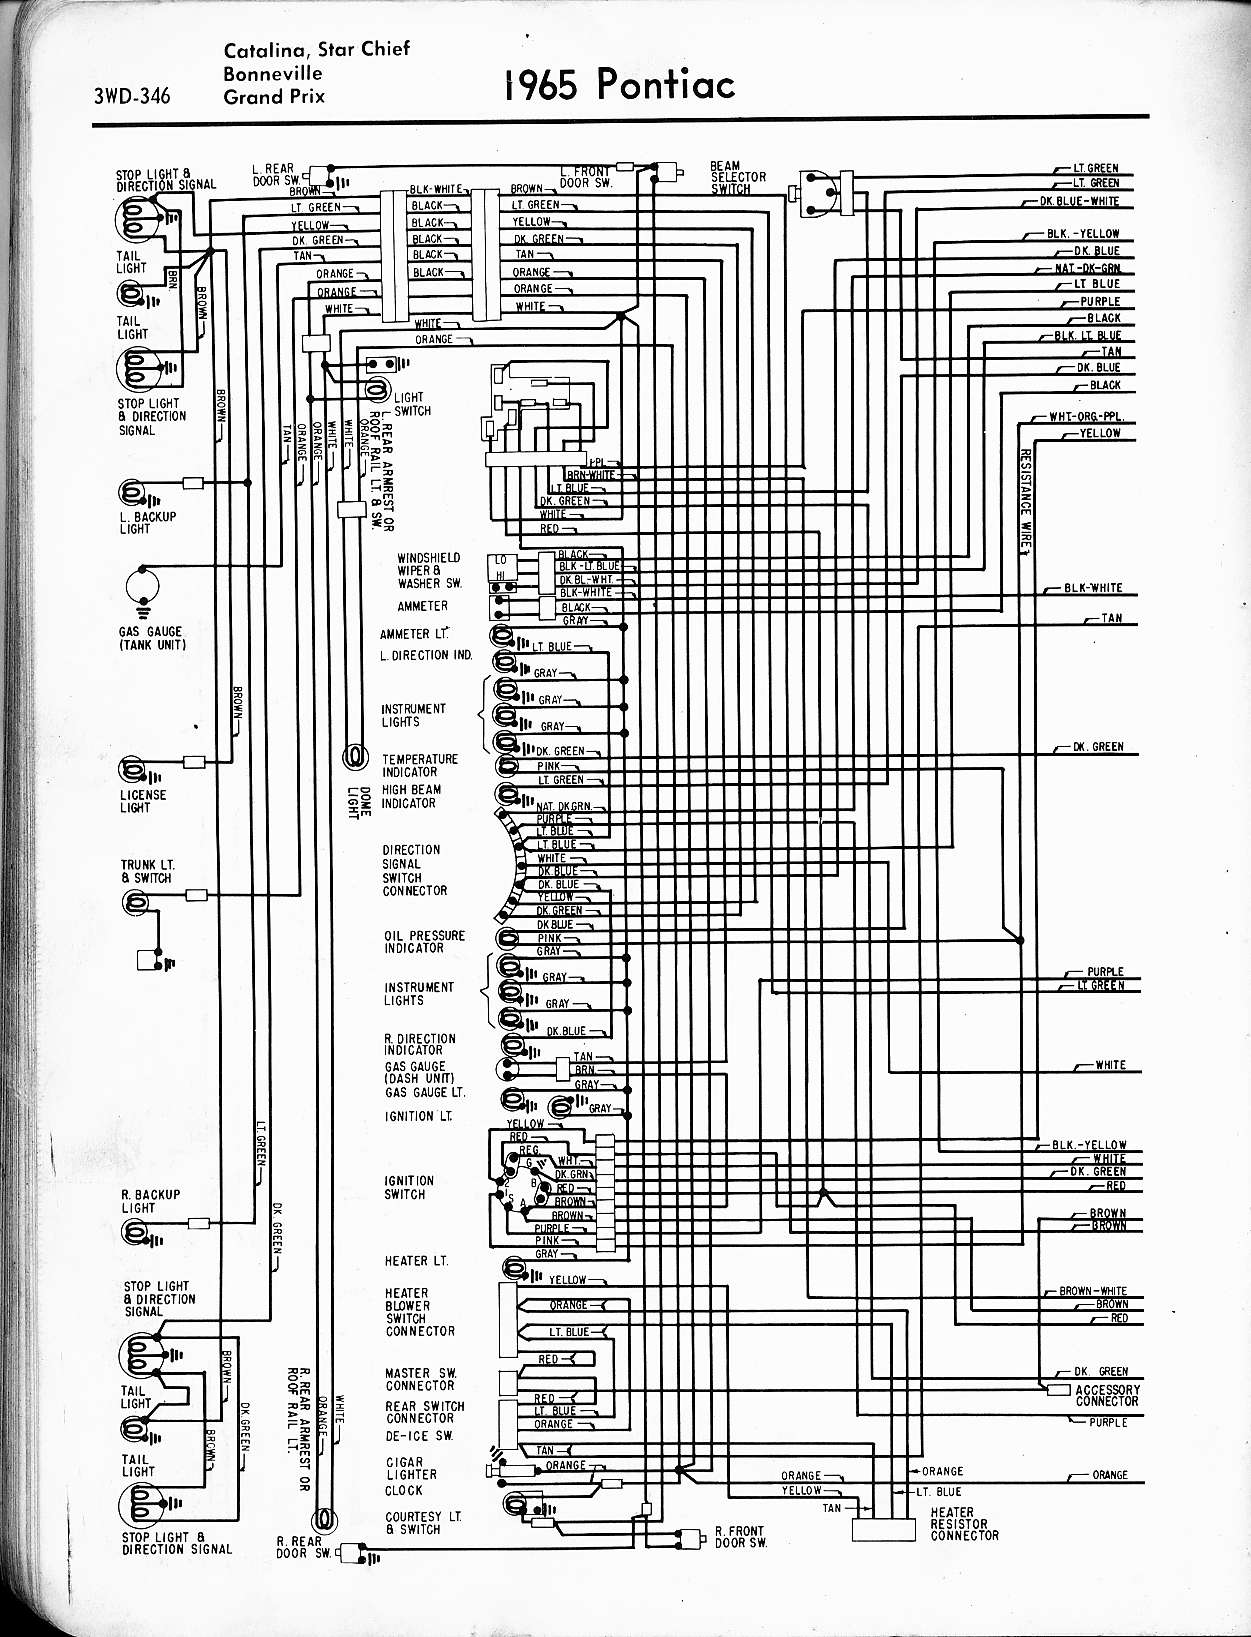 Wiring Schematic For 1970 Gto Diagram Data Chevy Chevelle Engine 70 Pontiac Library